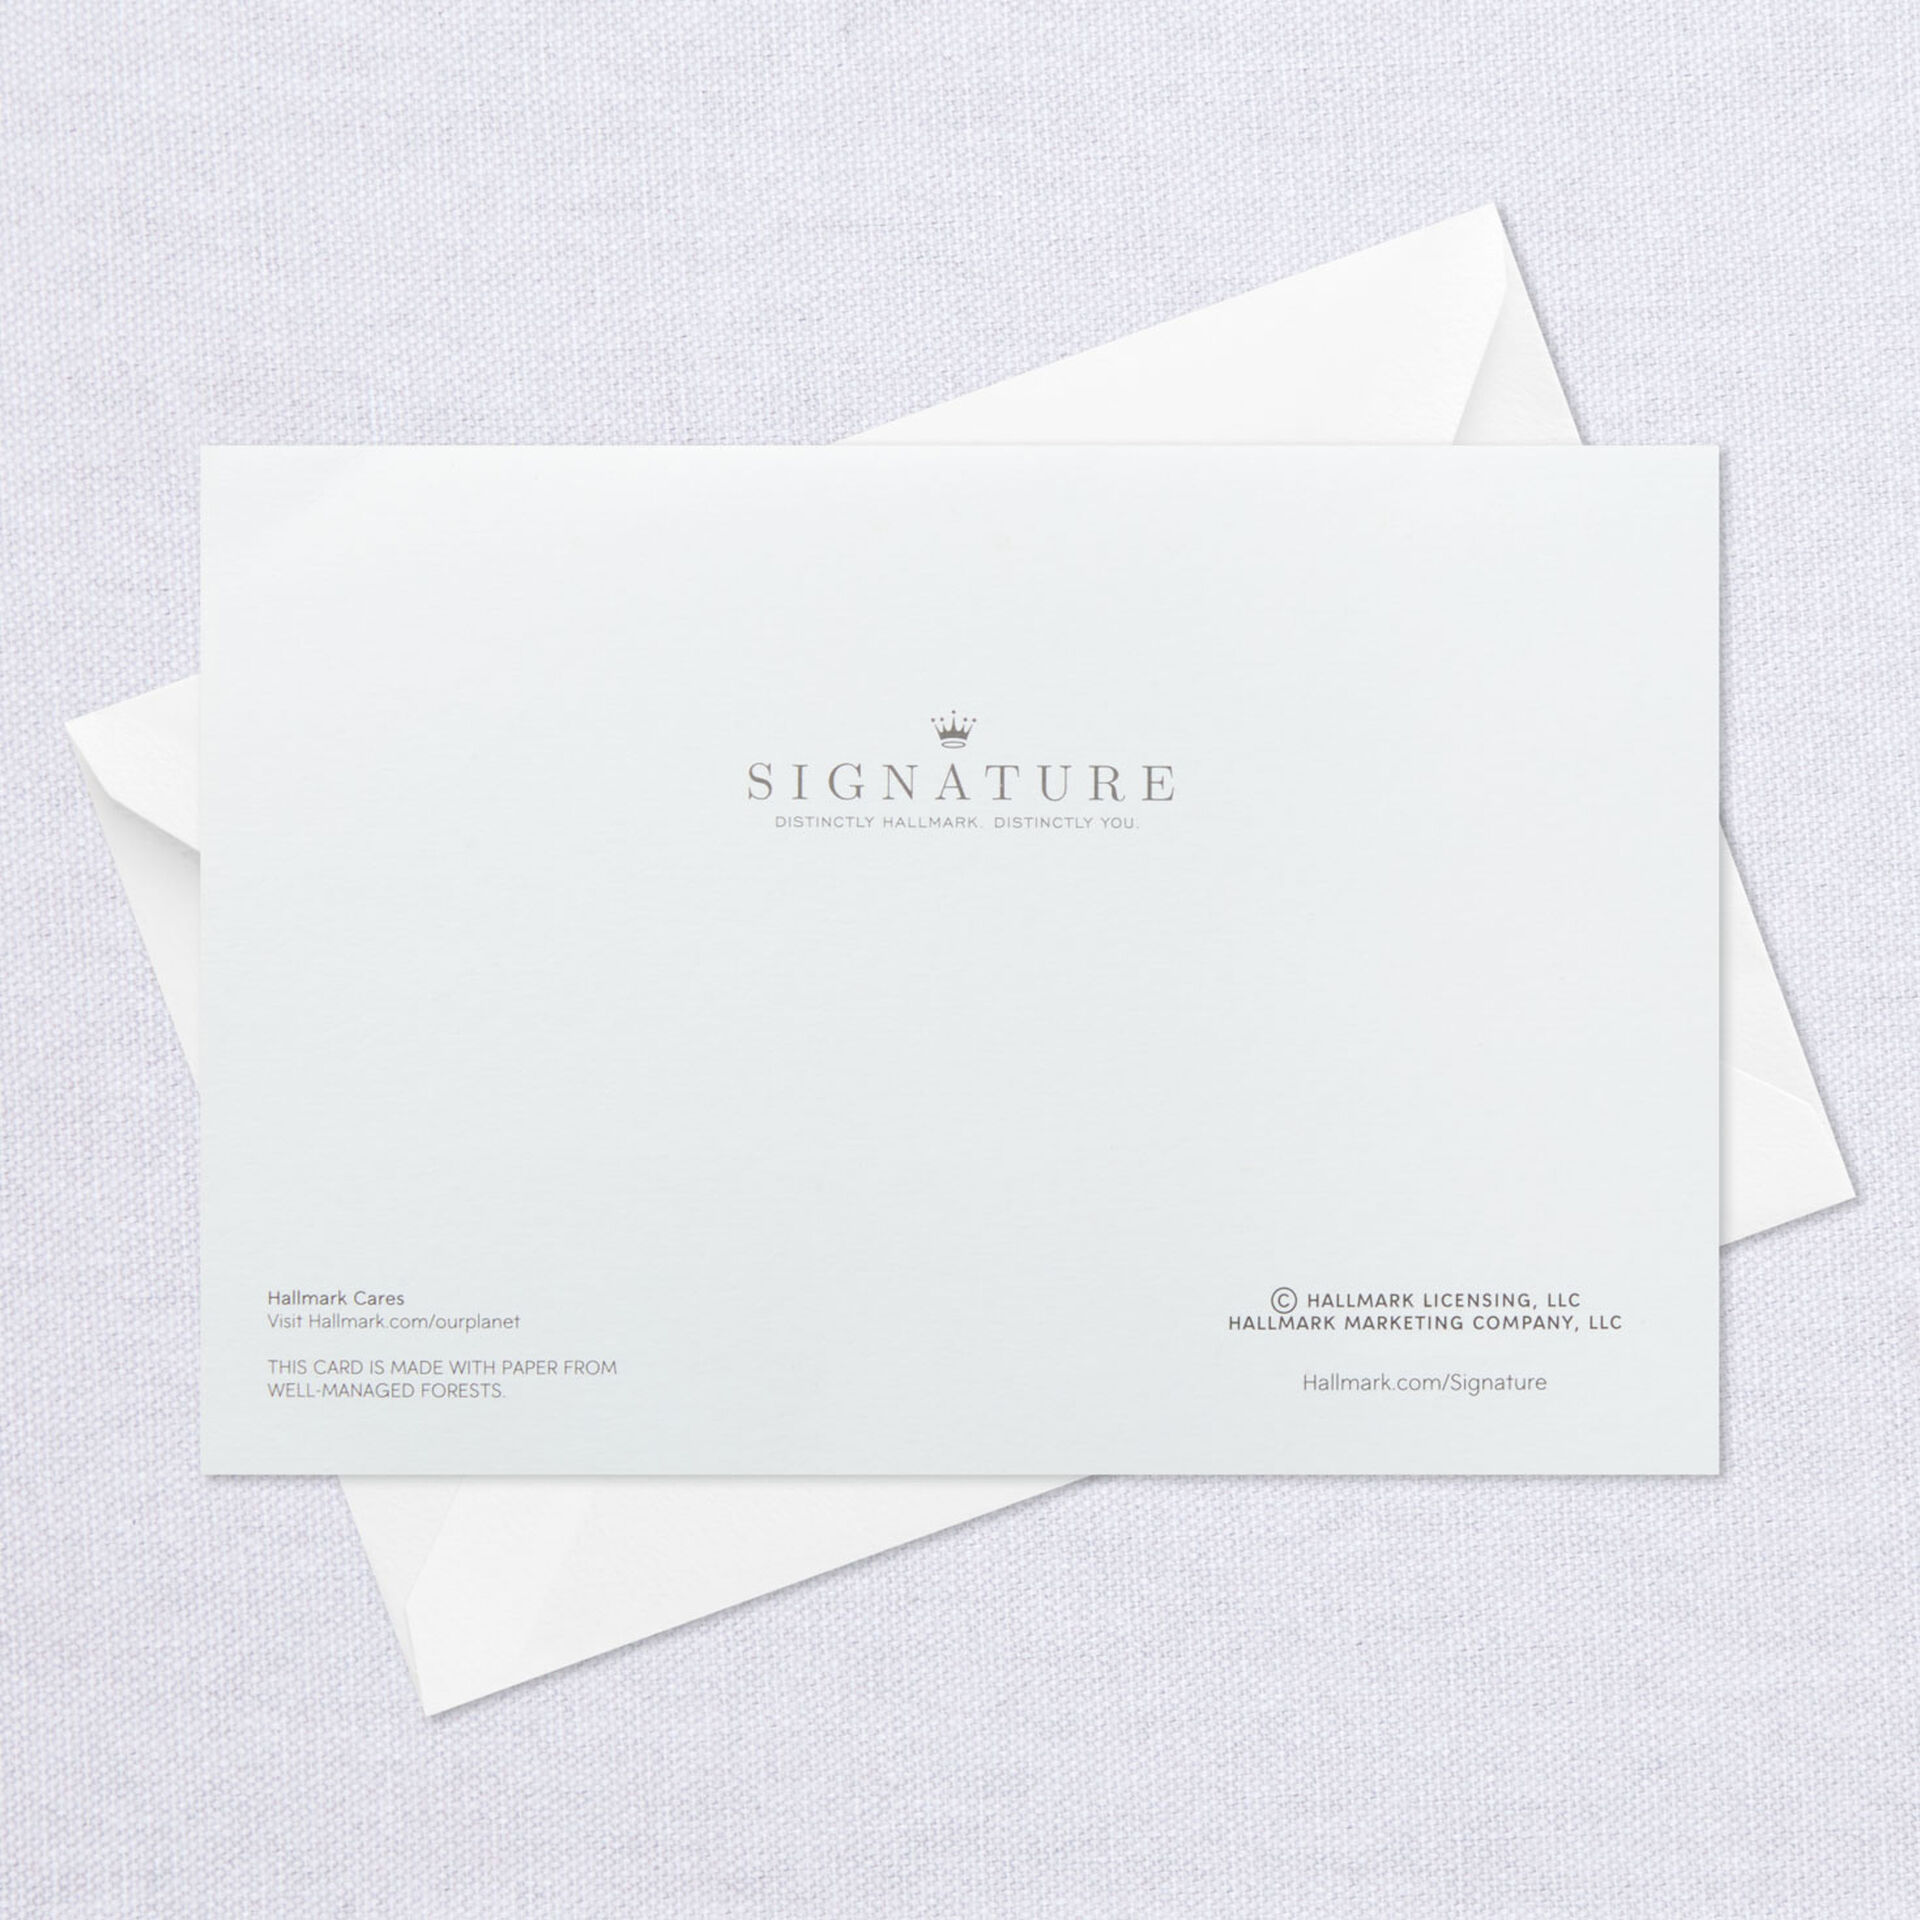 ValBox A9 Invitation Envelopes 250 Qty 5-3//4 x 8-3//4 White Envelopes Self Seal for Invitations 5.75 x 8.75 Inches Photos Baby Shower Greeting Cards Announcements Wedding